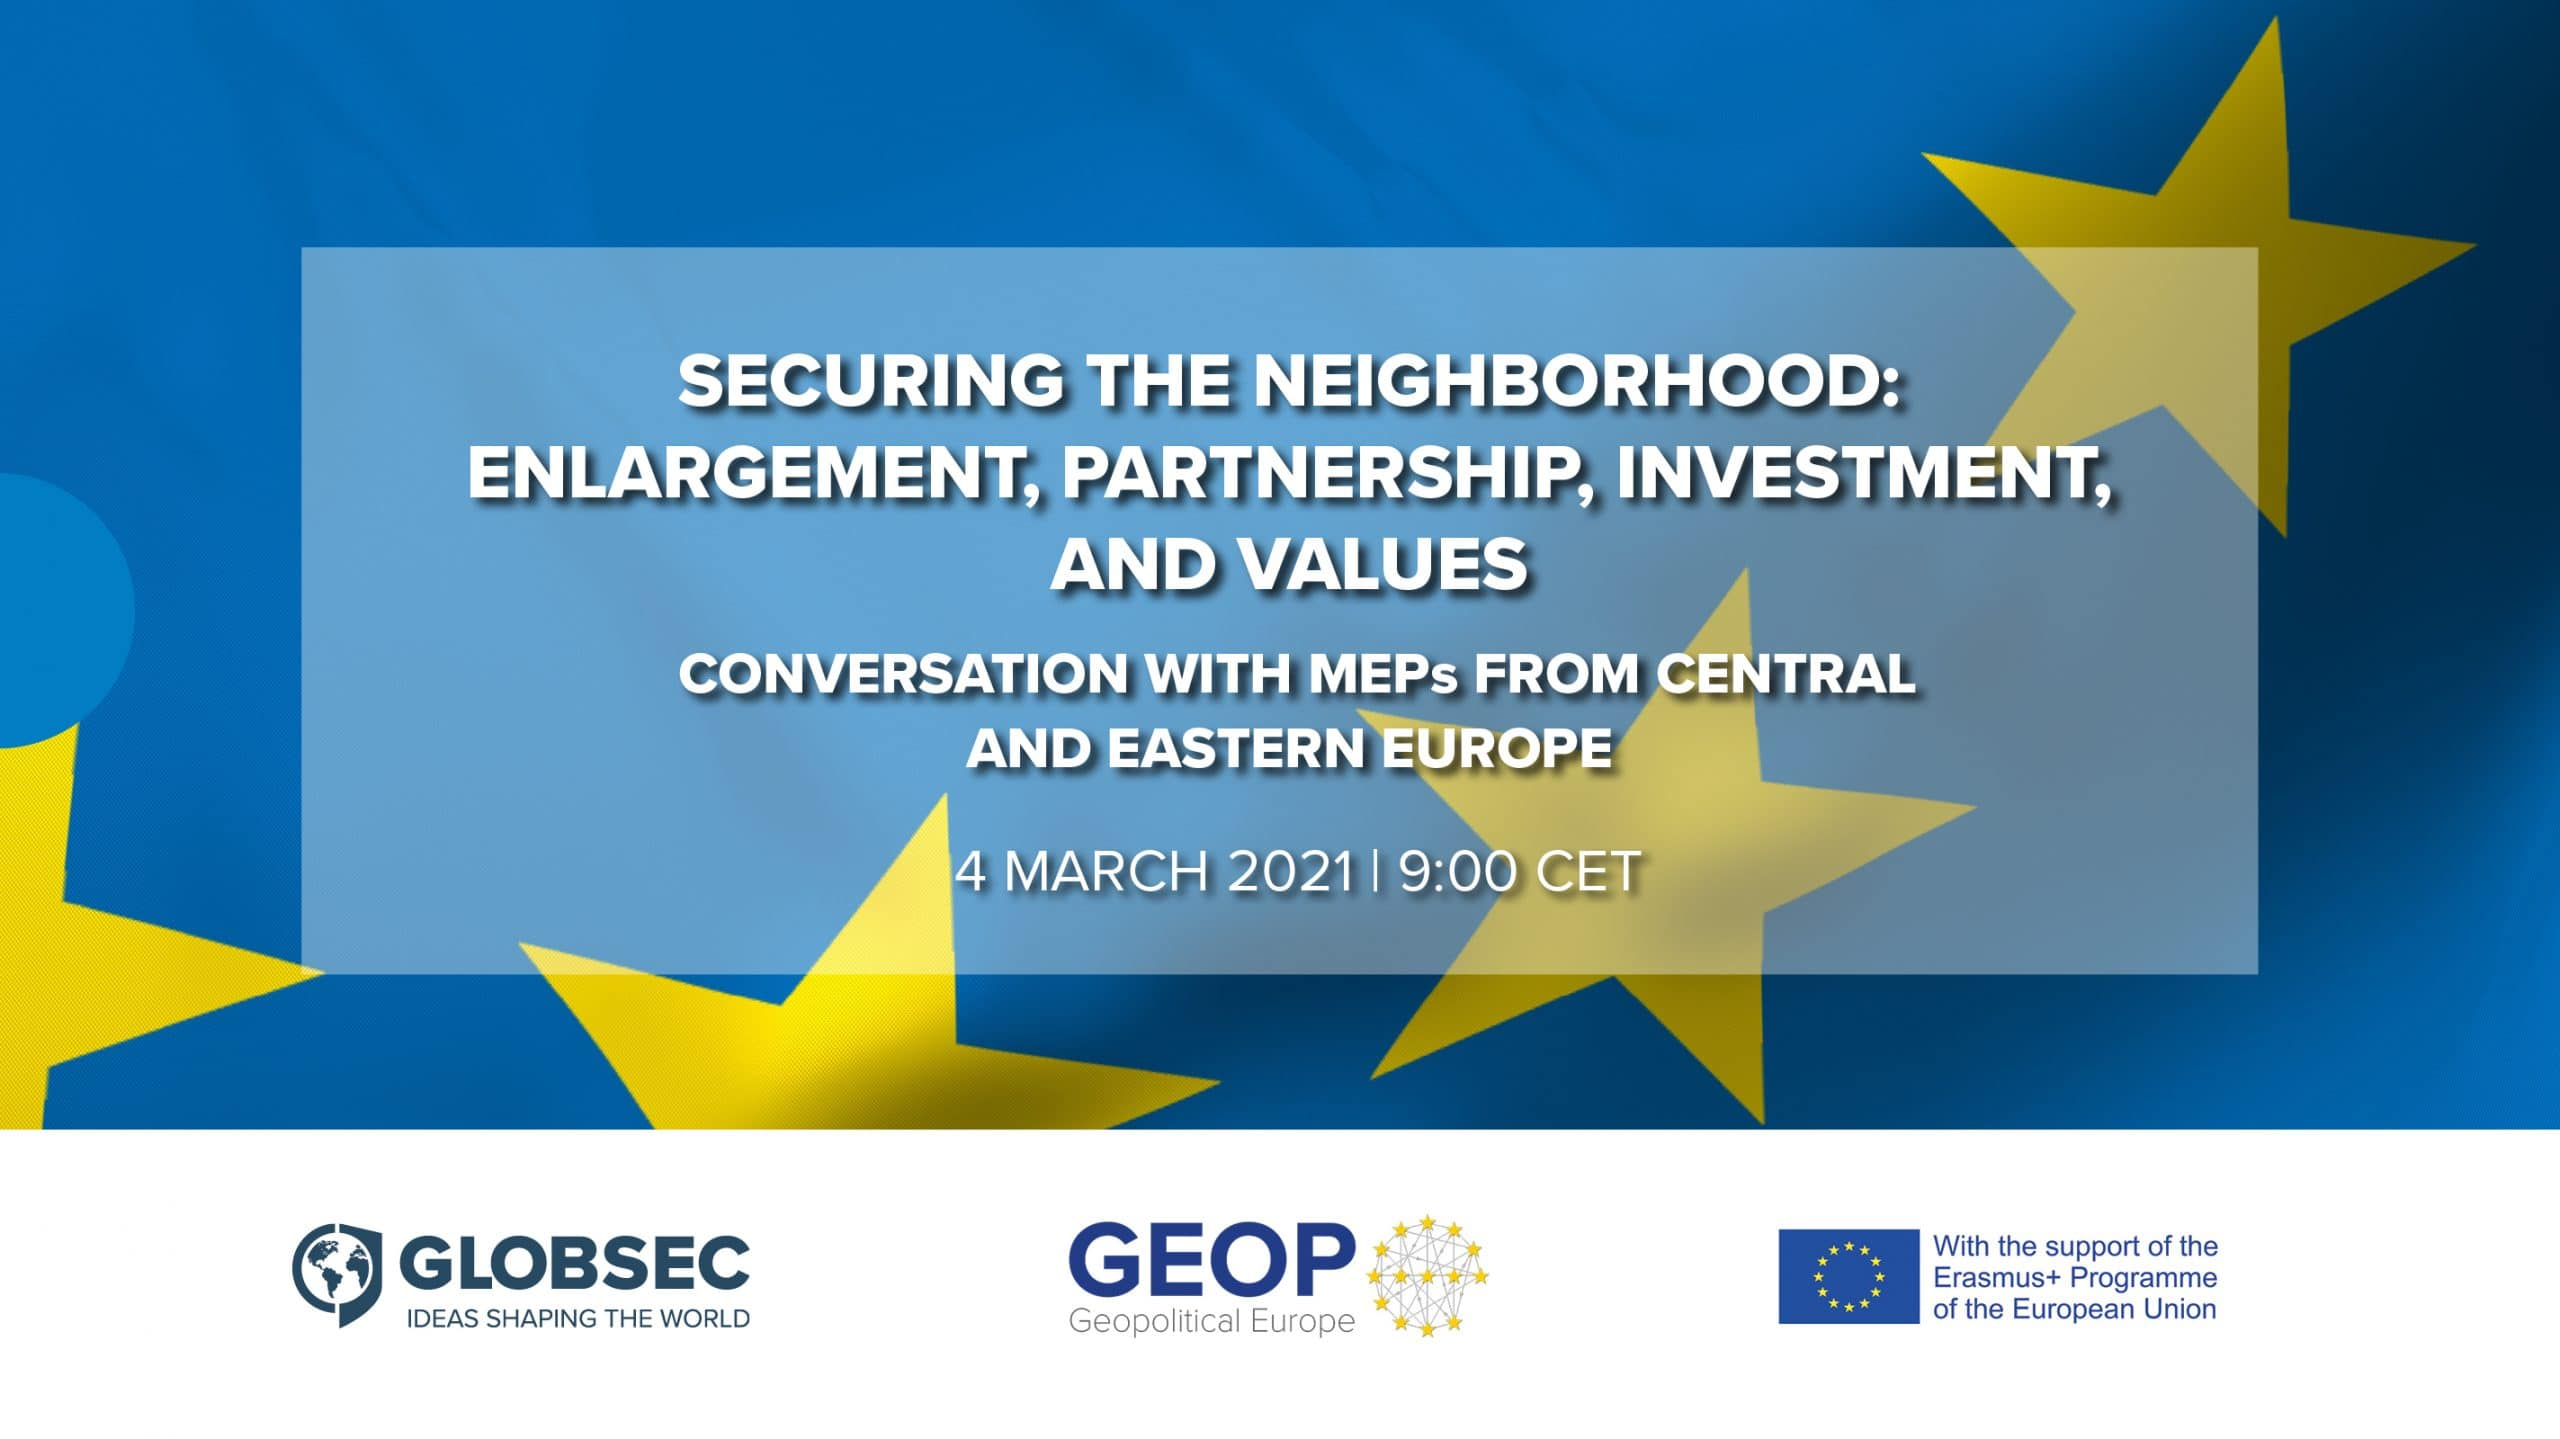 Securing the Neighborhood: Enlargement, Partnership, Investment, and Values